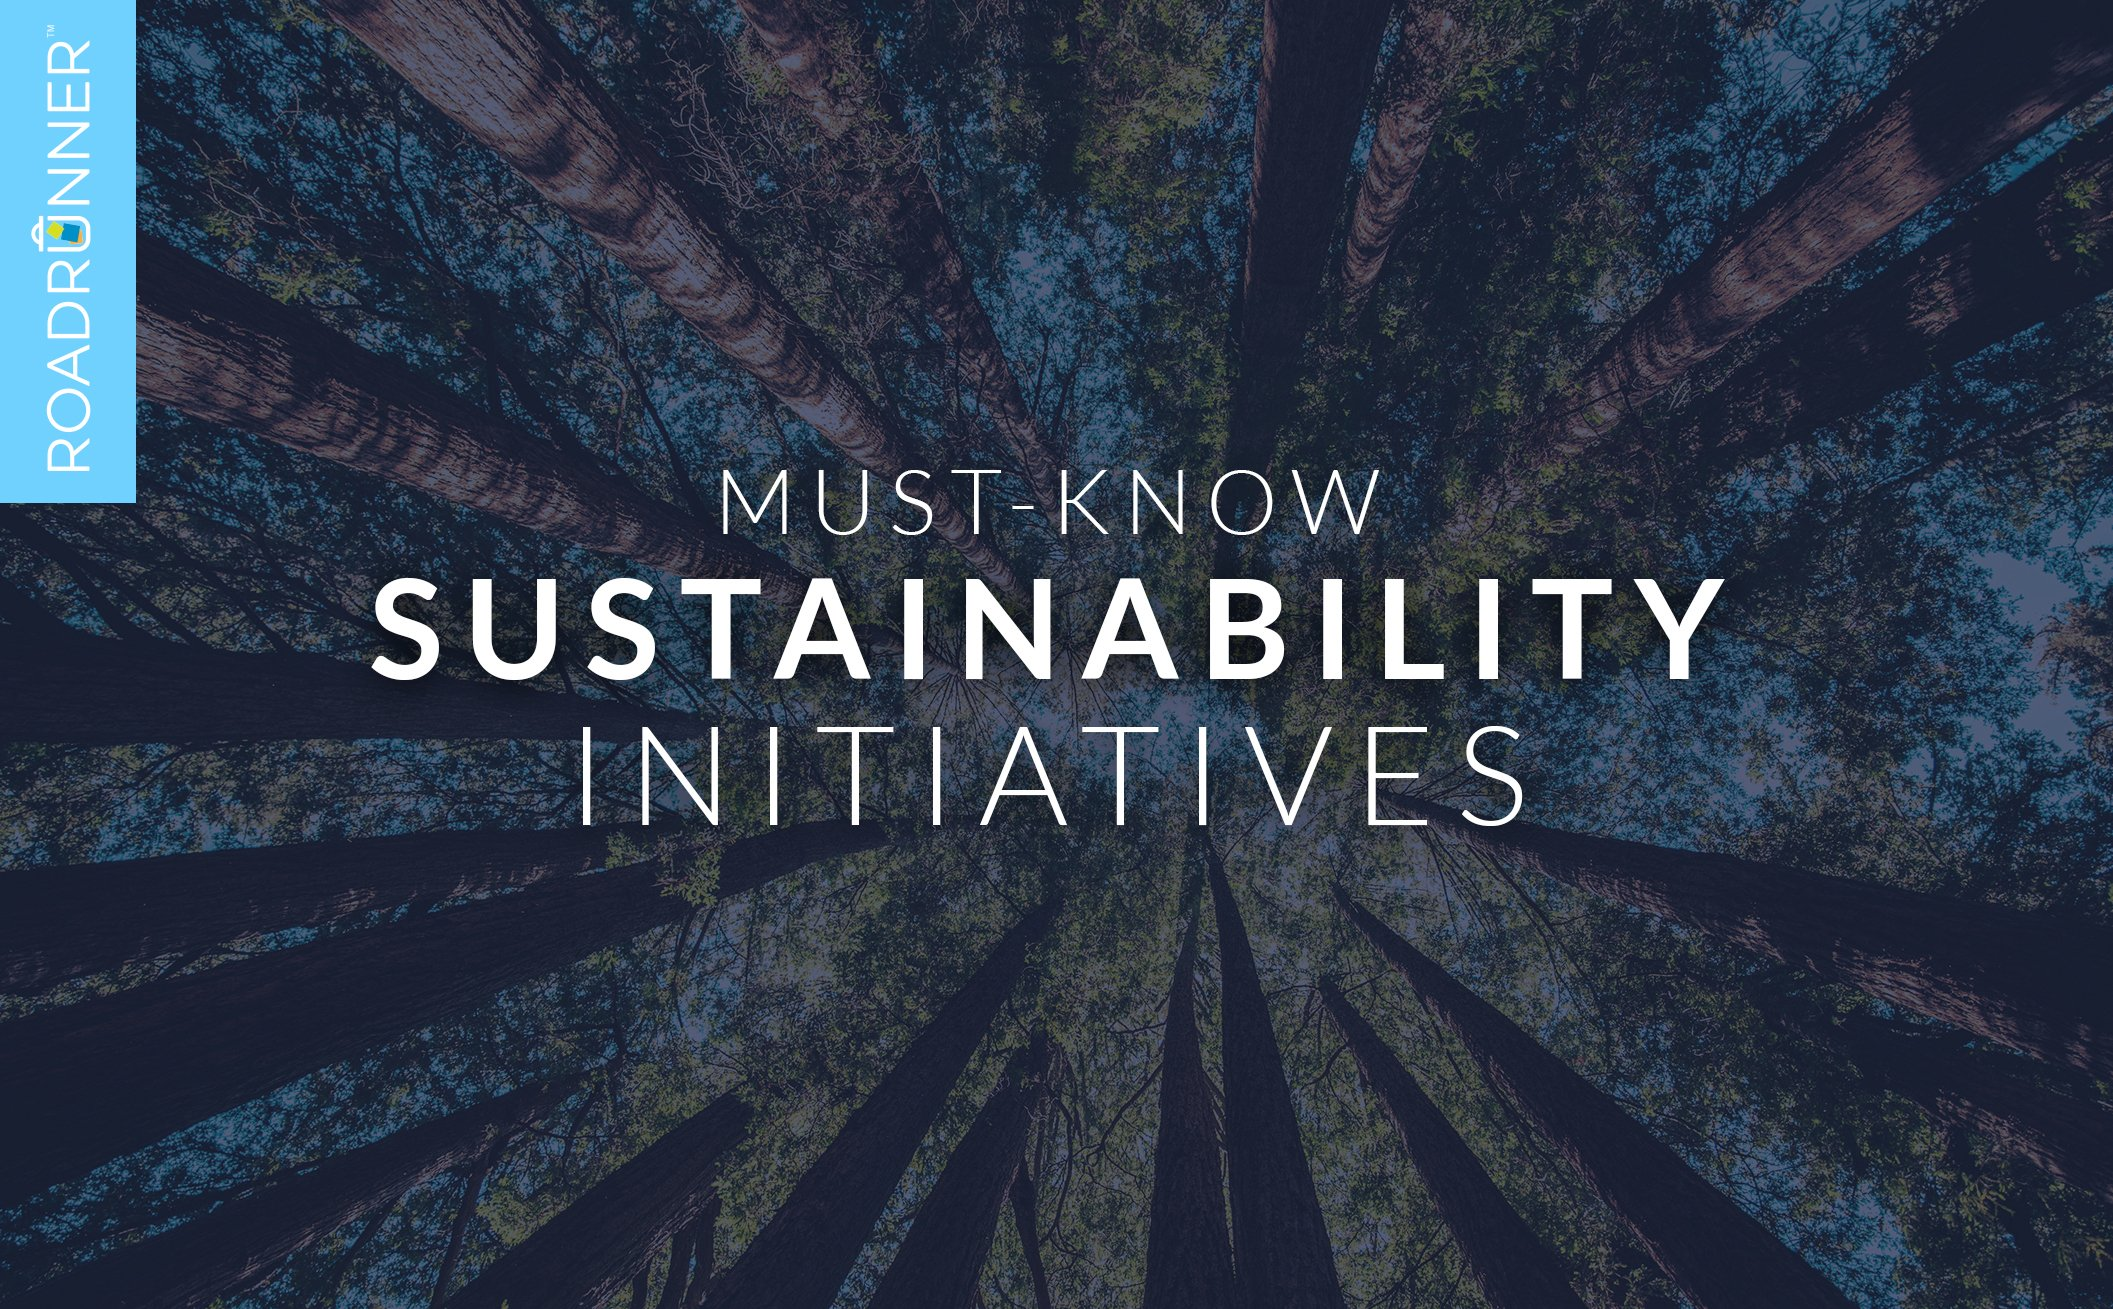 10 Environmental & Sustainability Initiatives to Know This Year